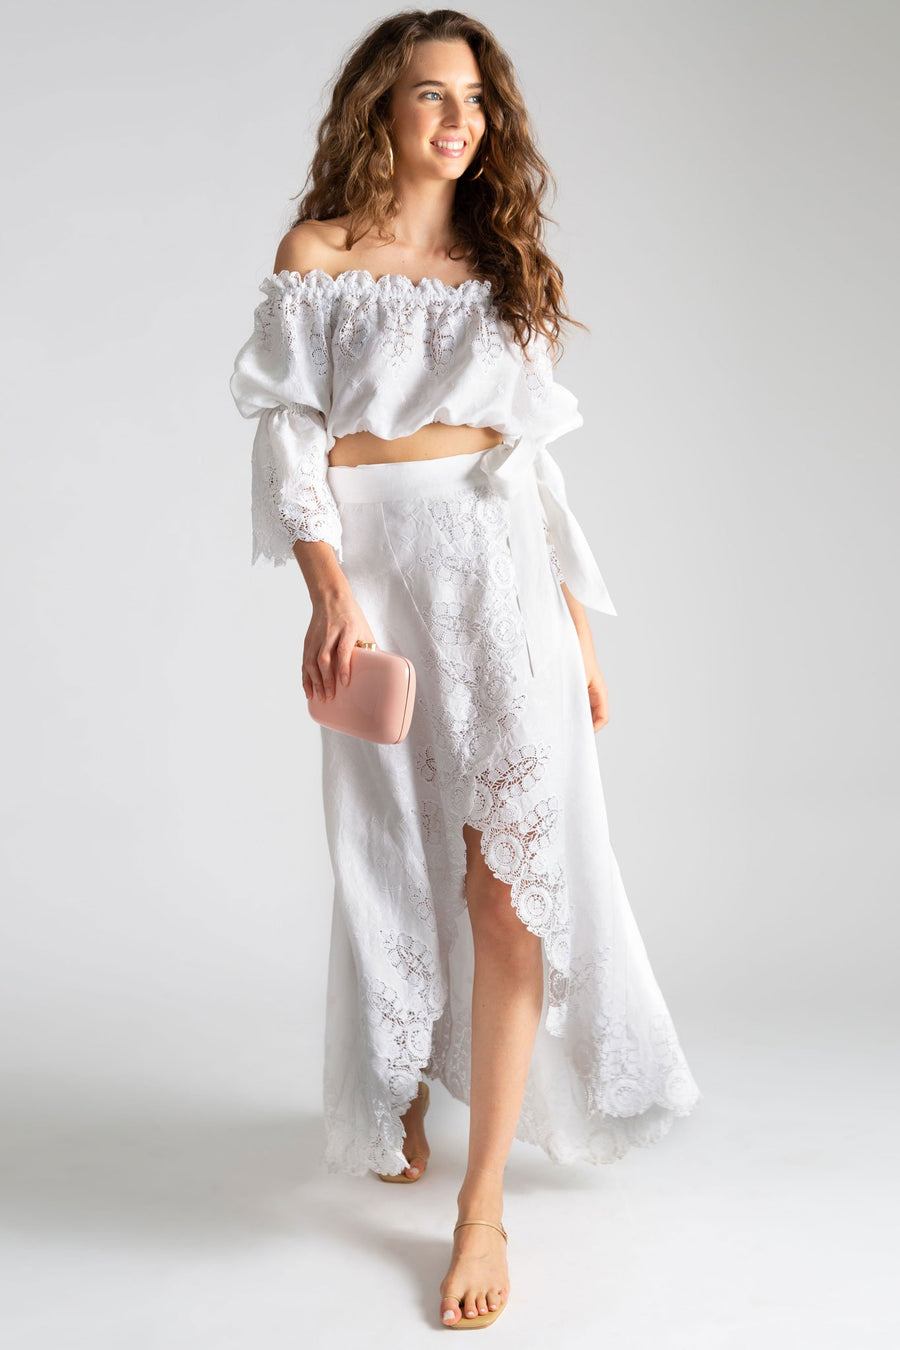 This is a photo of a woman wearing a white linen and lace outfit with maxi wrap skirt open in the front and off the shoulder top with peasant sleeves. She holds a light pink clutch and styles the look with nude sandals.